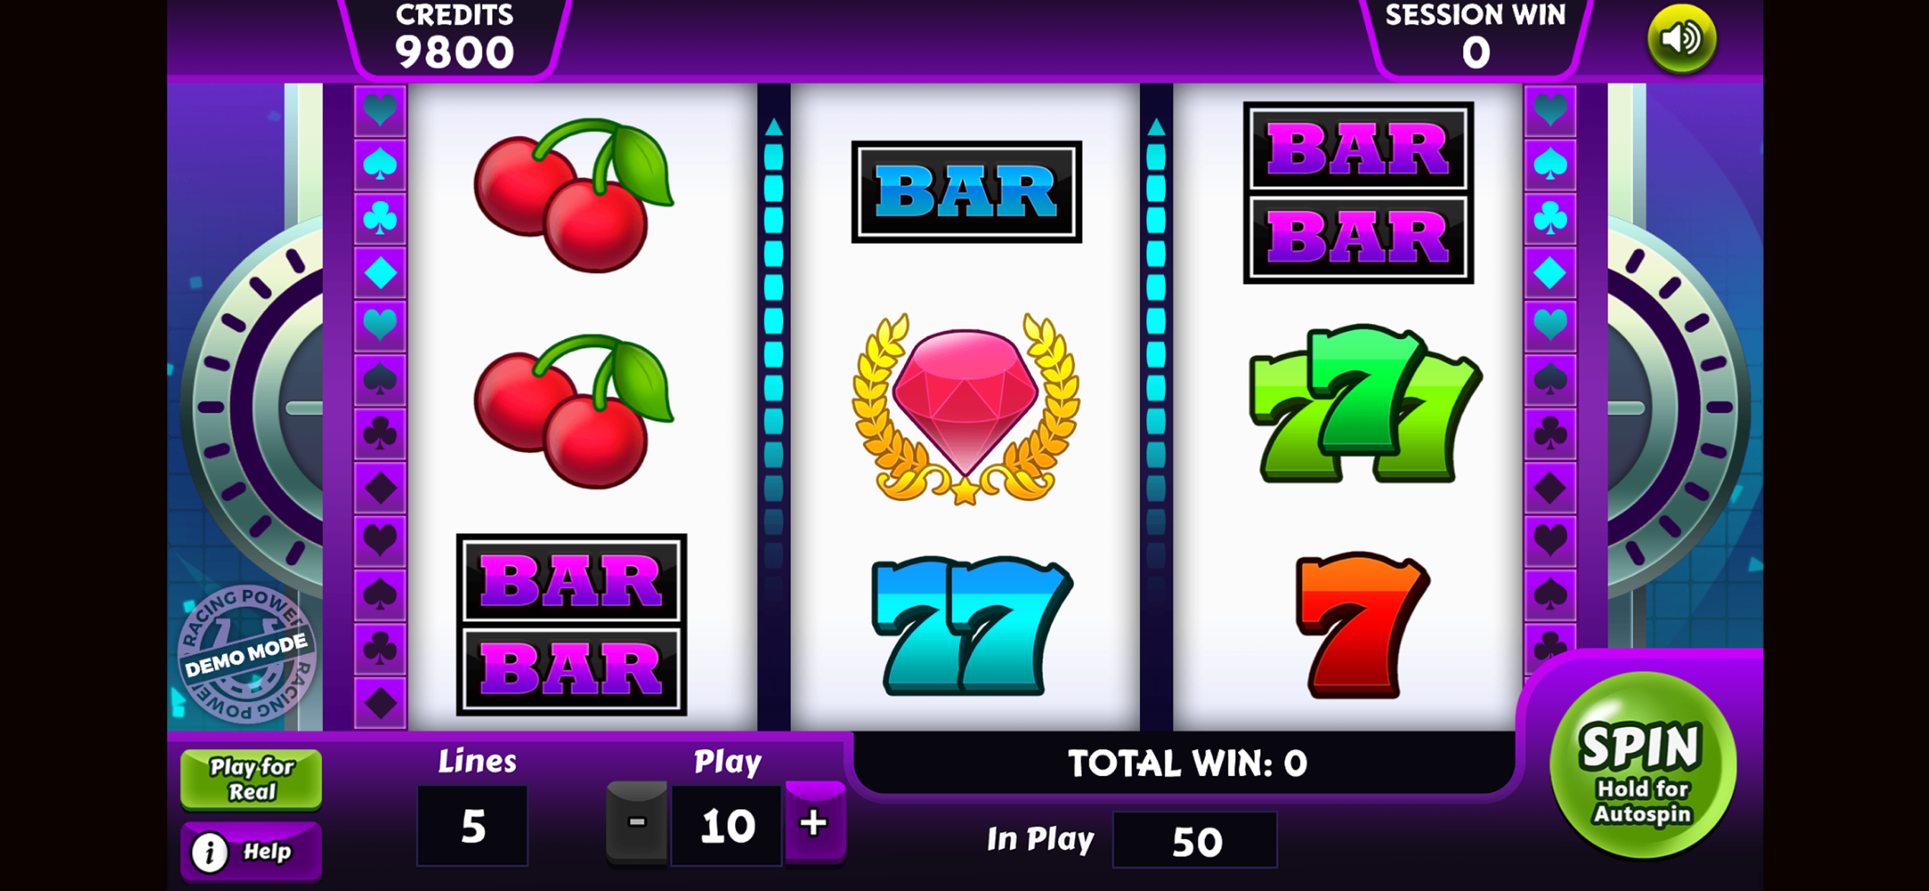 Wild Ruby Real Money Gambling On The App Store In 2020 Gambling